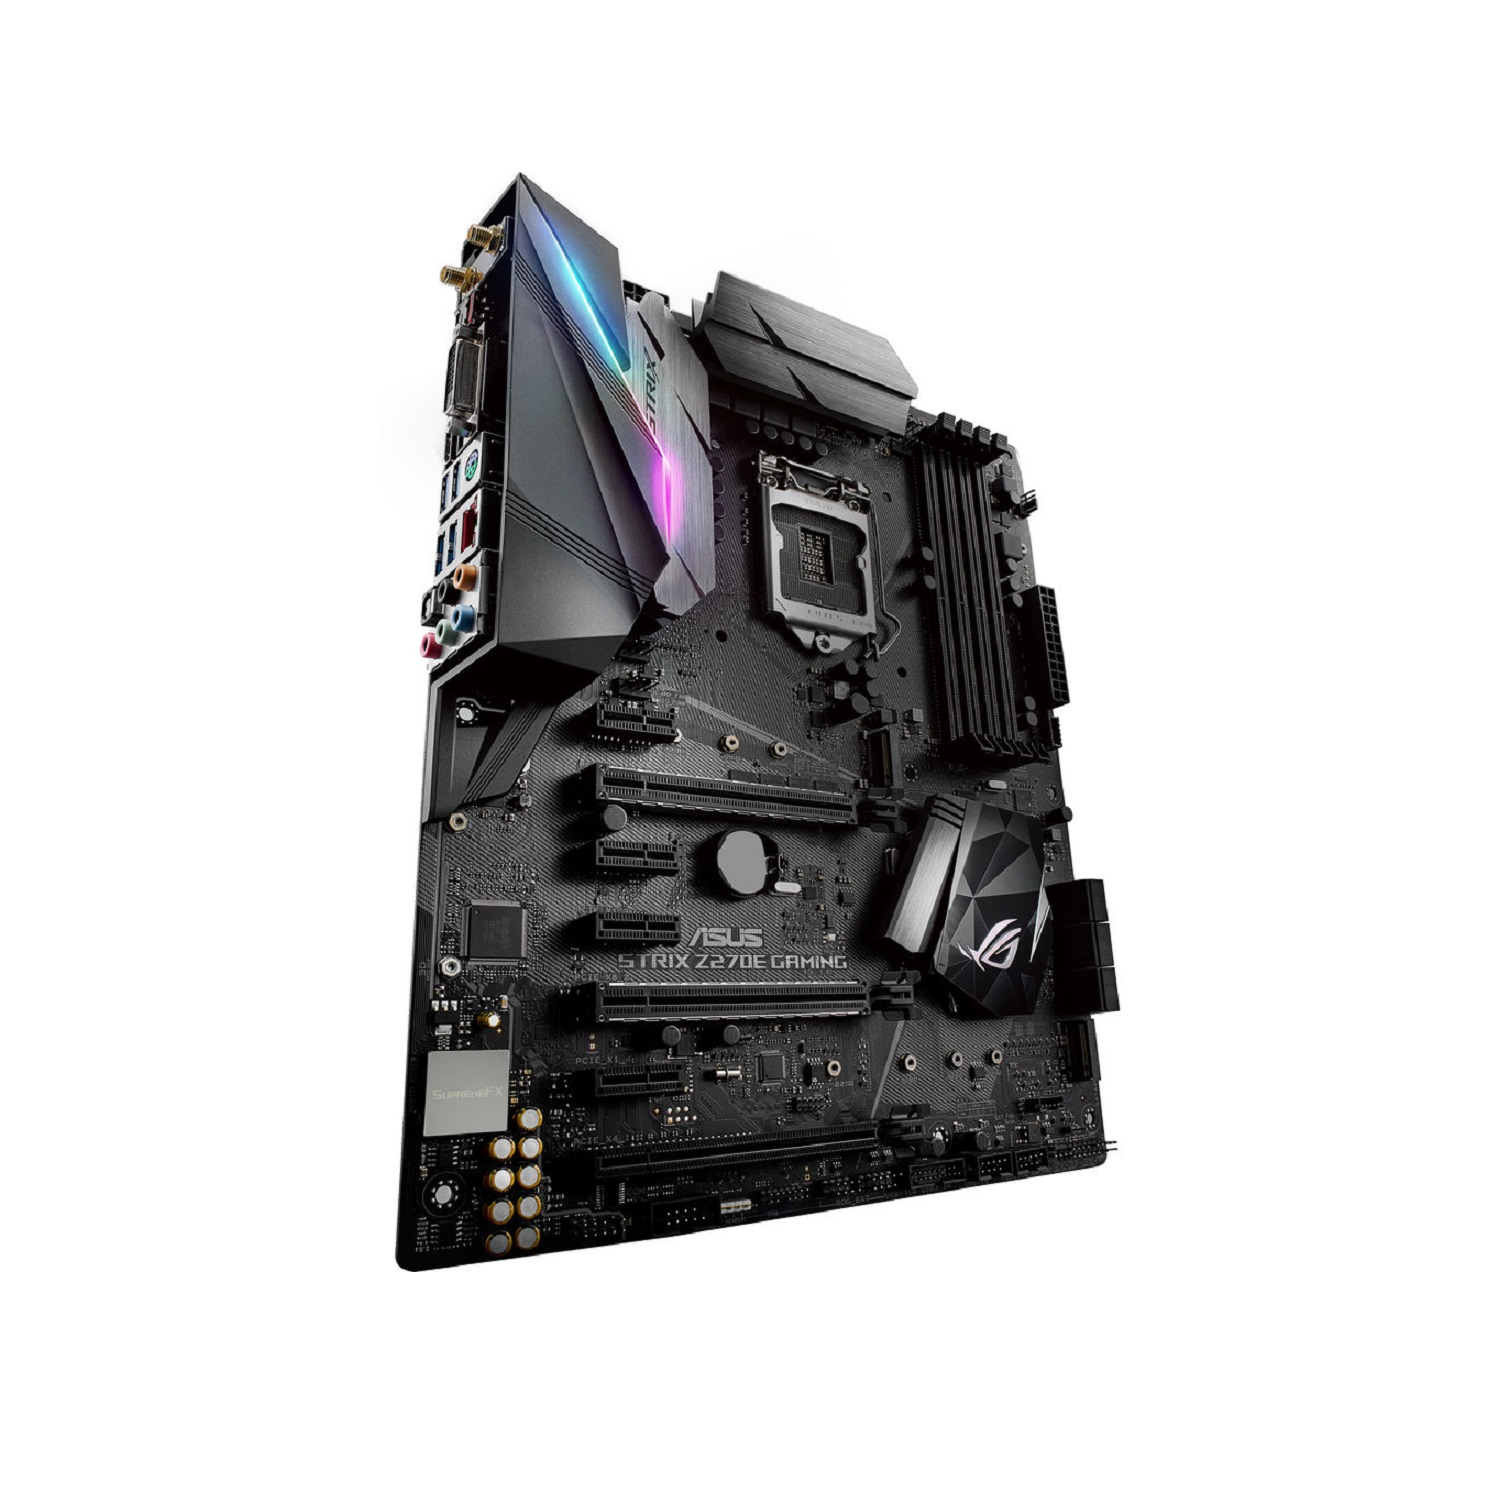 Asus ROG Strix Z270E Gaming Motherboard by ASUS